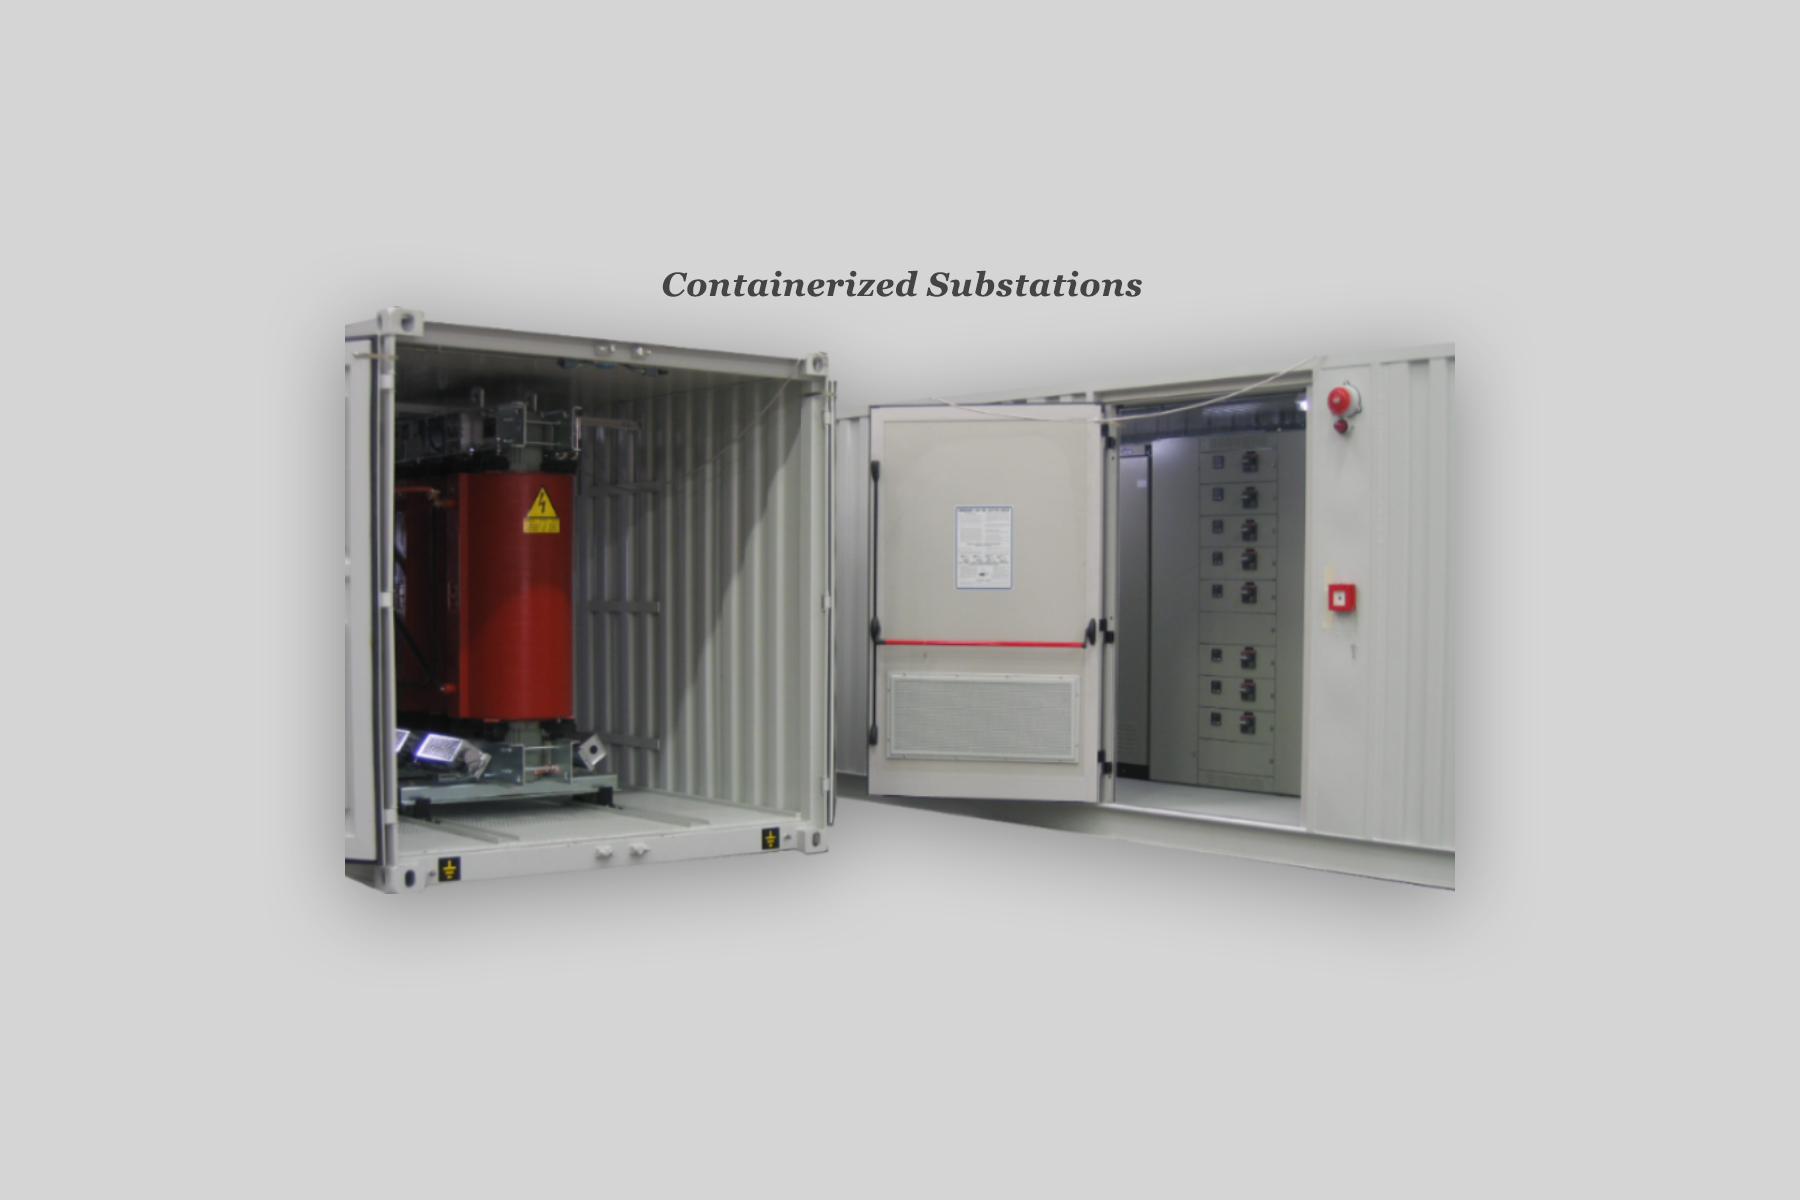 Containerized Substations 2